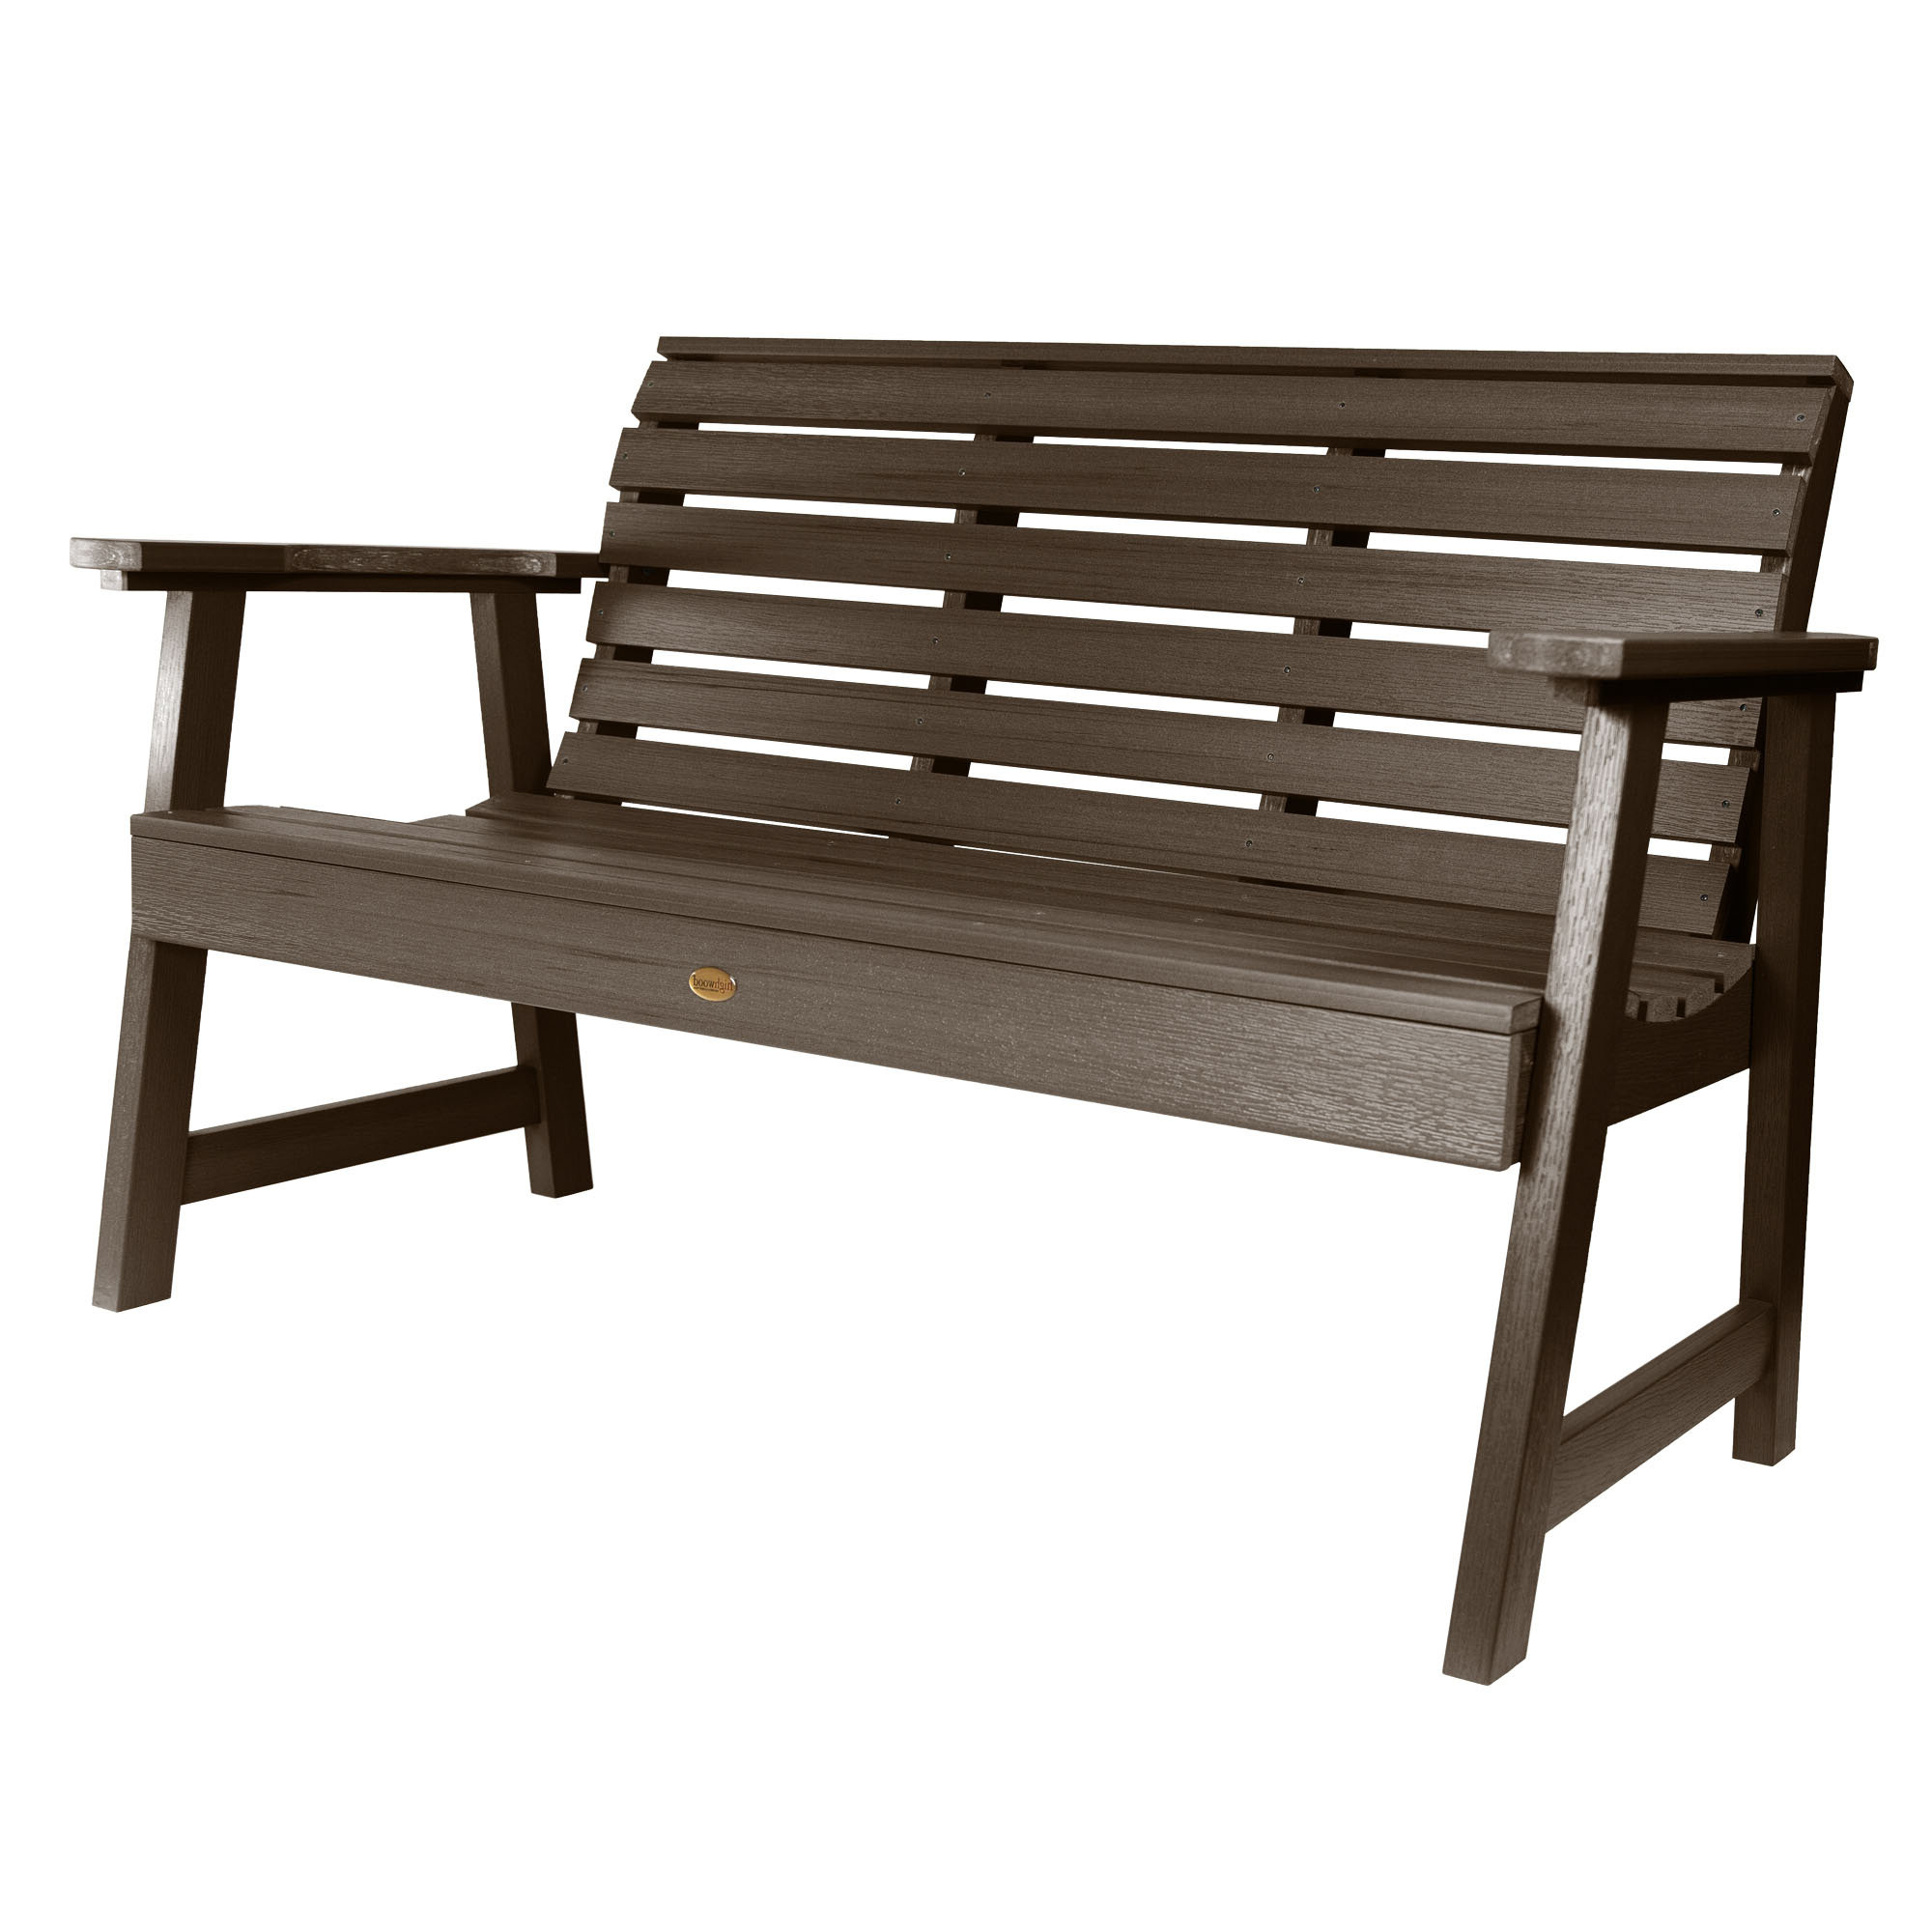 Trigg Synthetic Plastic Garden Bench Intended For 2019 Gehlert Traditional Patio Iron Garden Benches (View 25 of 30)